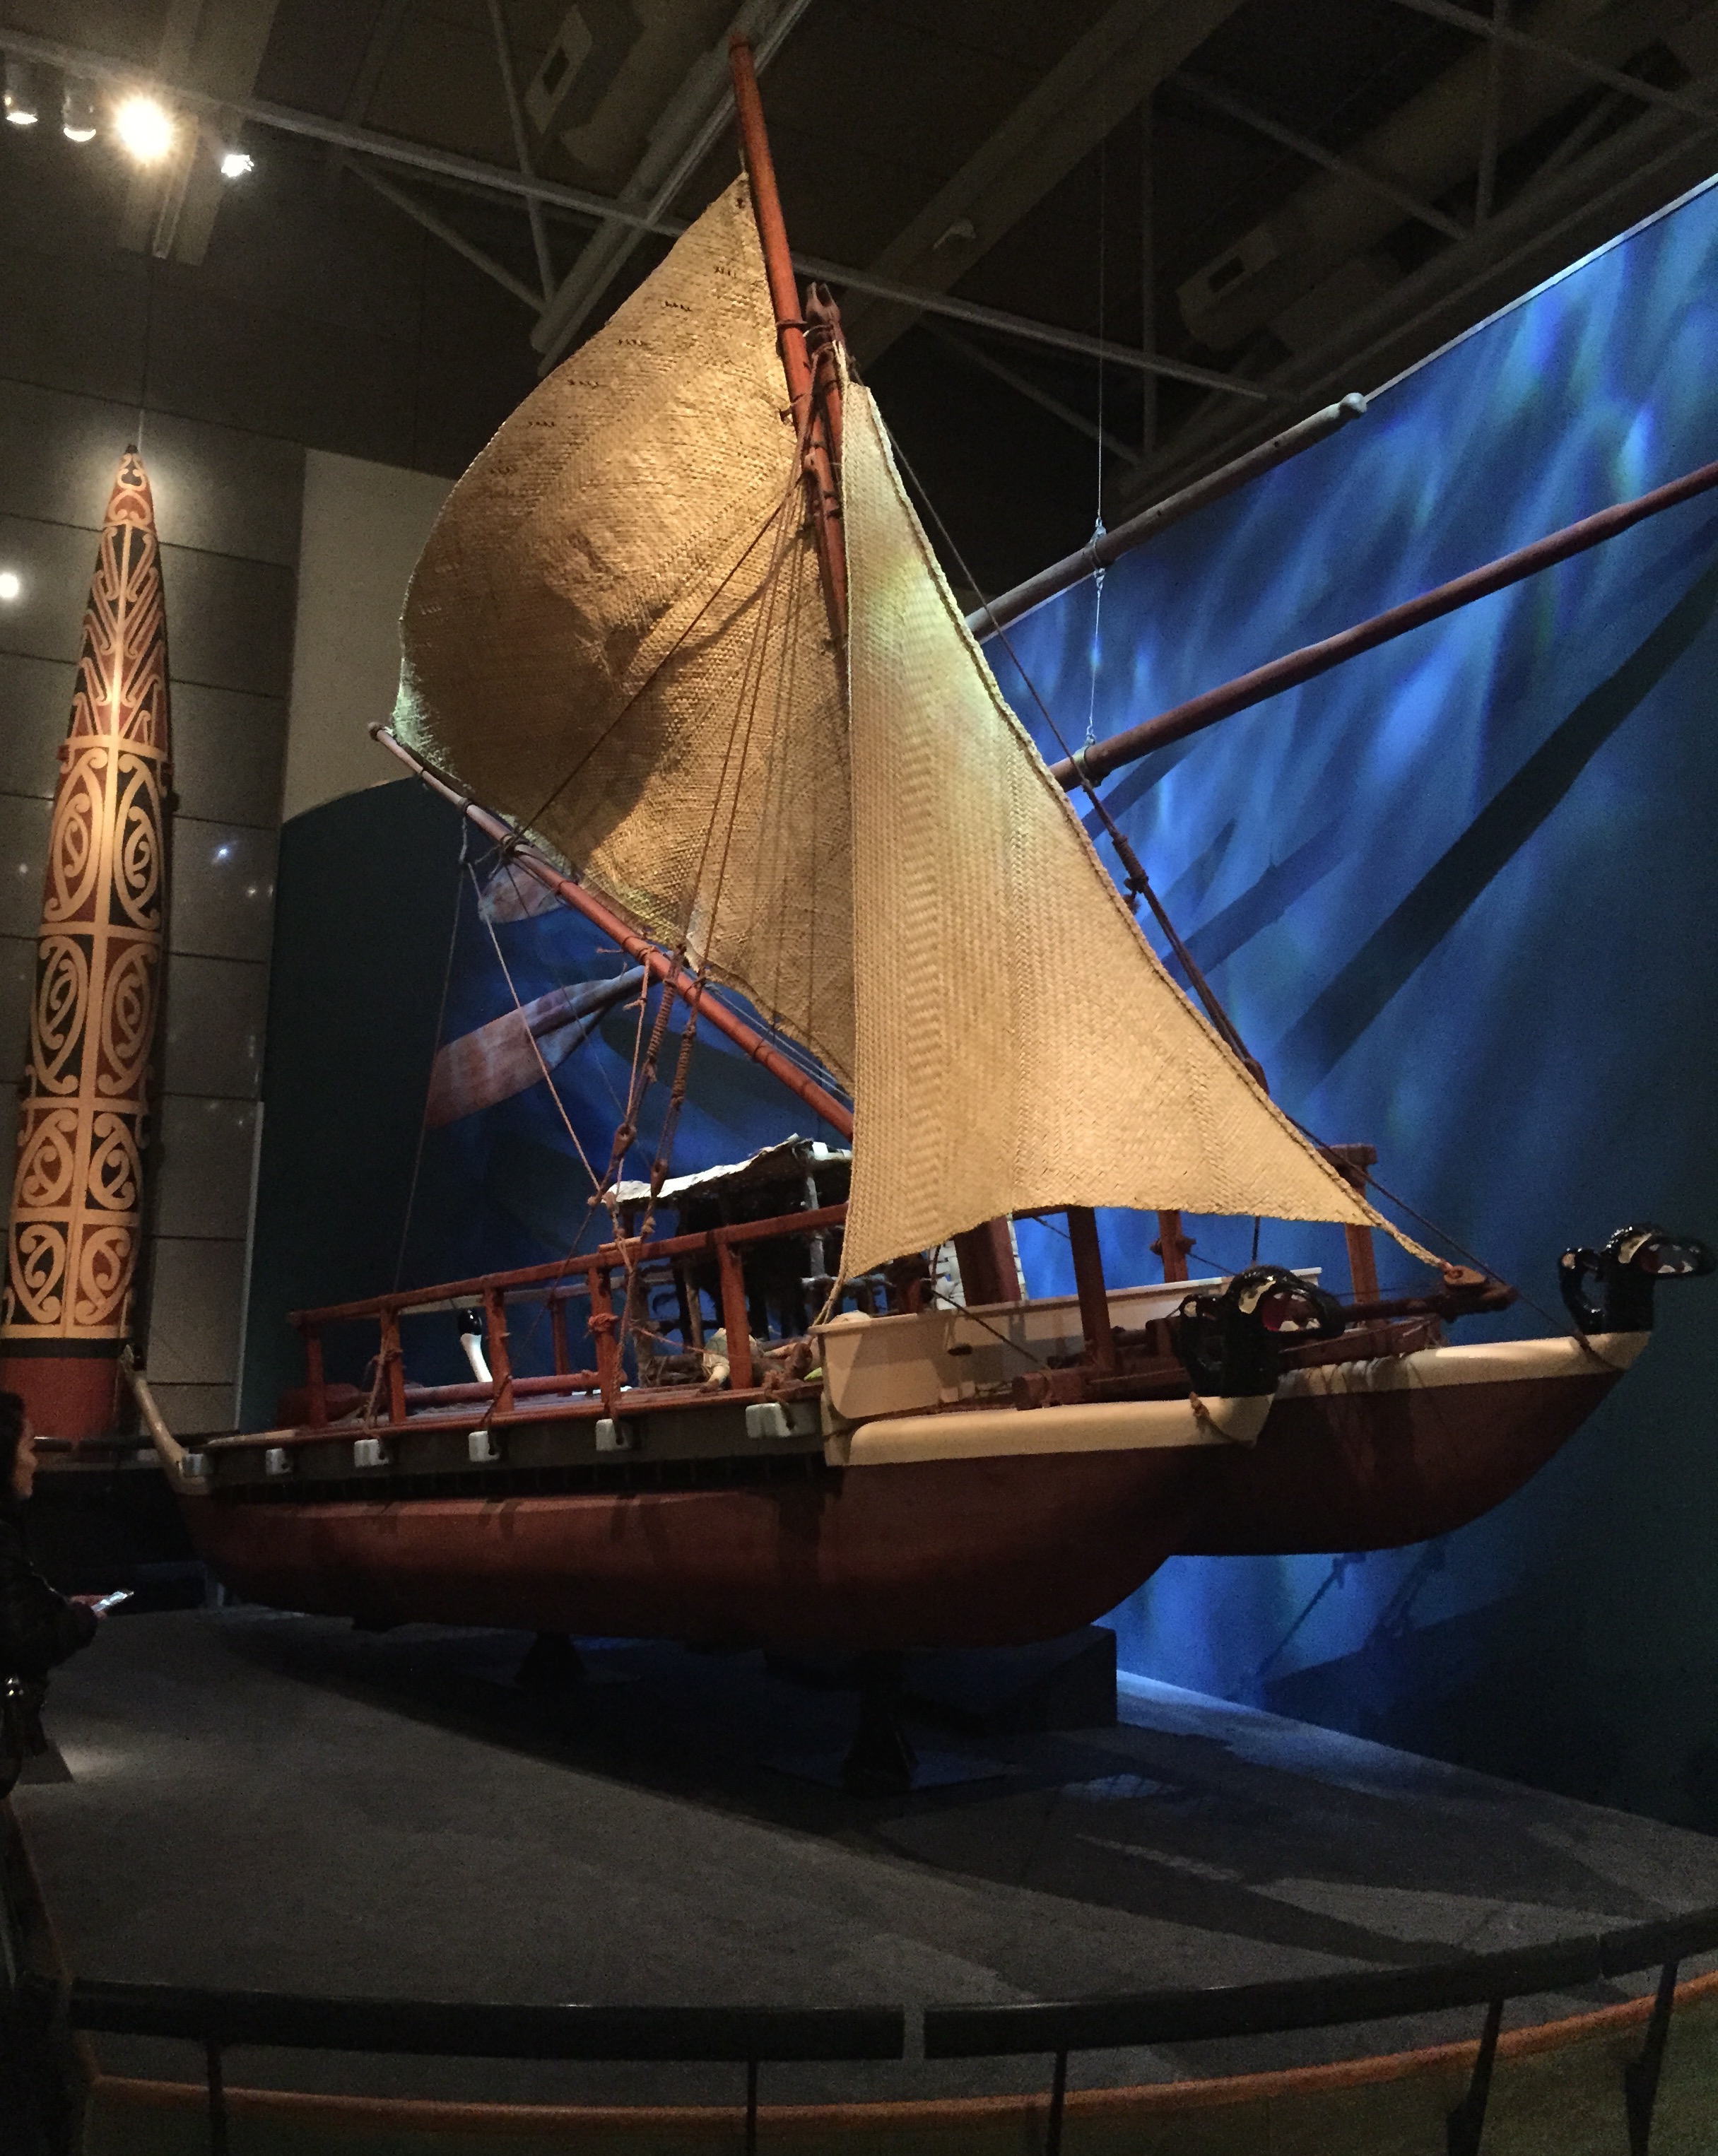 A boat from my favorite Māori cultural history exhibit.